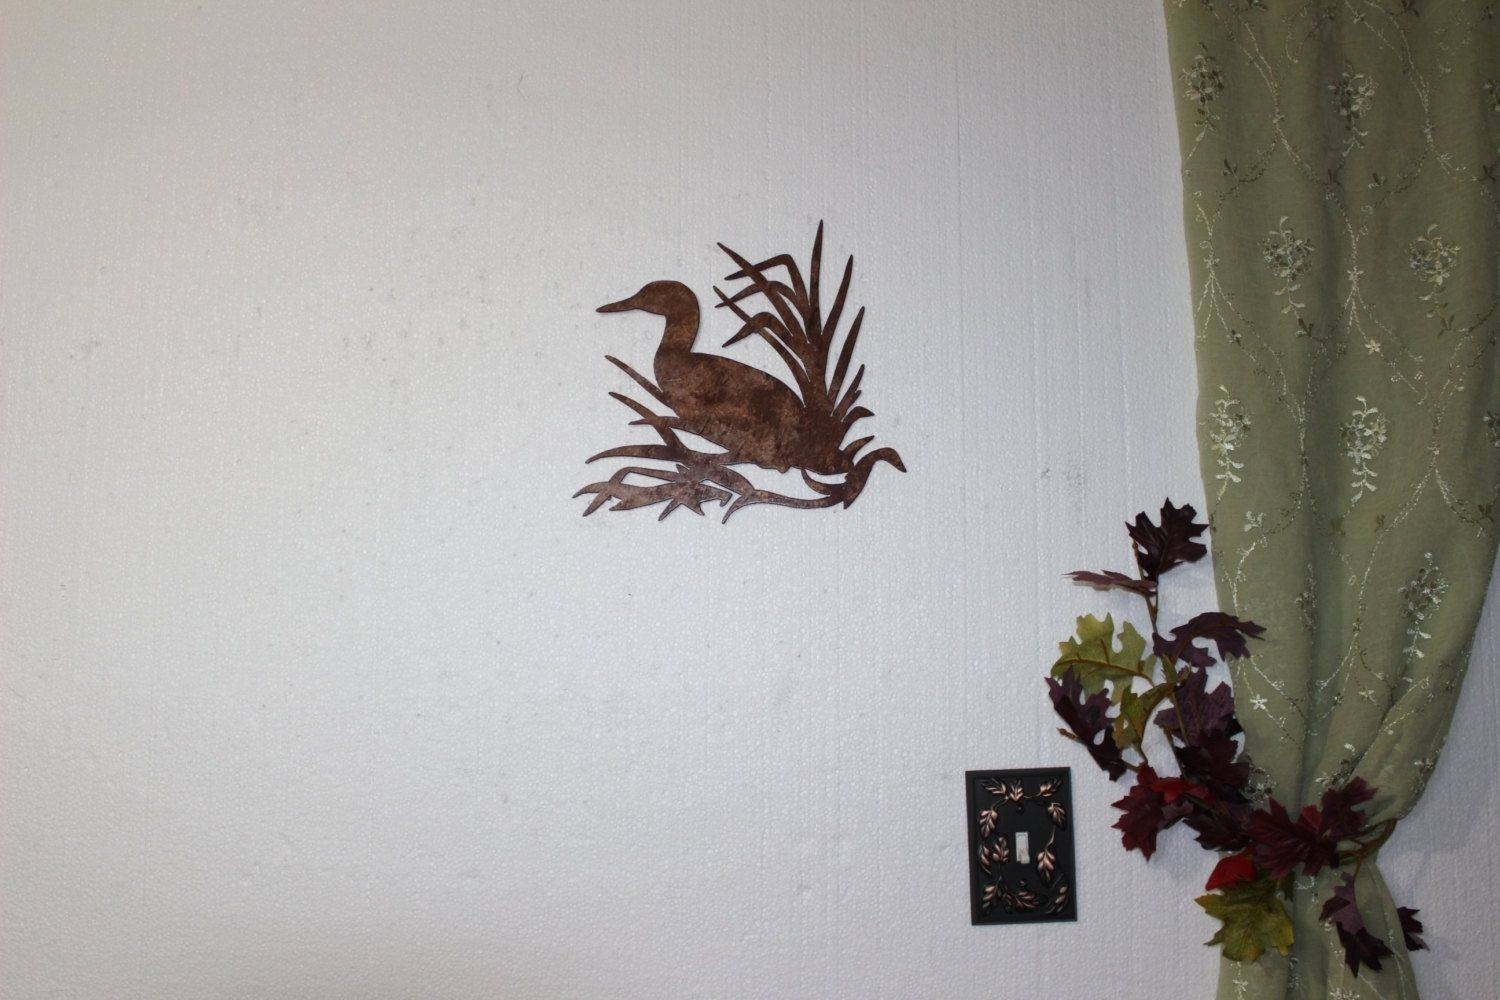 Hand Made Duck In Reeds On Sawblade Metal Wall Art Country Rustic With Regard To Latest Country Metal Wall Art (View 15 of 30)